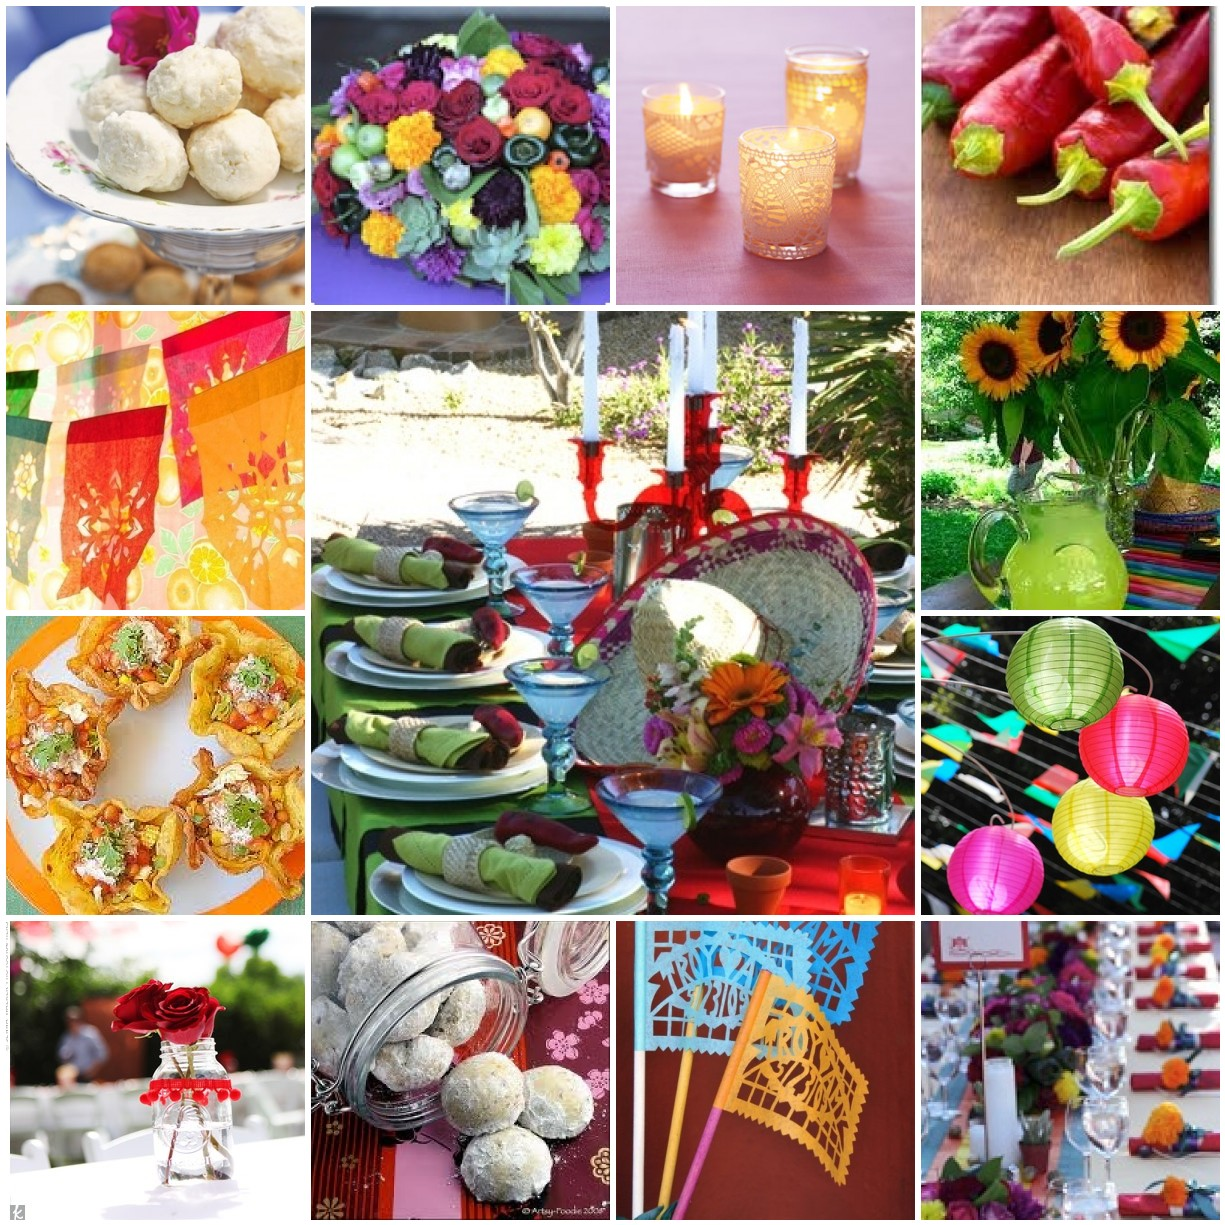 Sheek shindigs march 2011 for Wedding party ideas themes